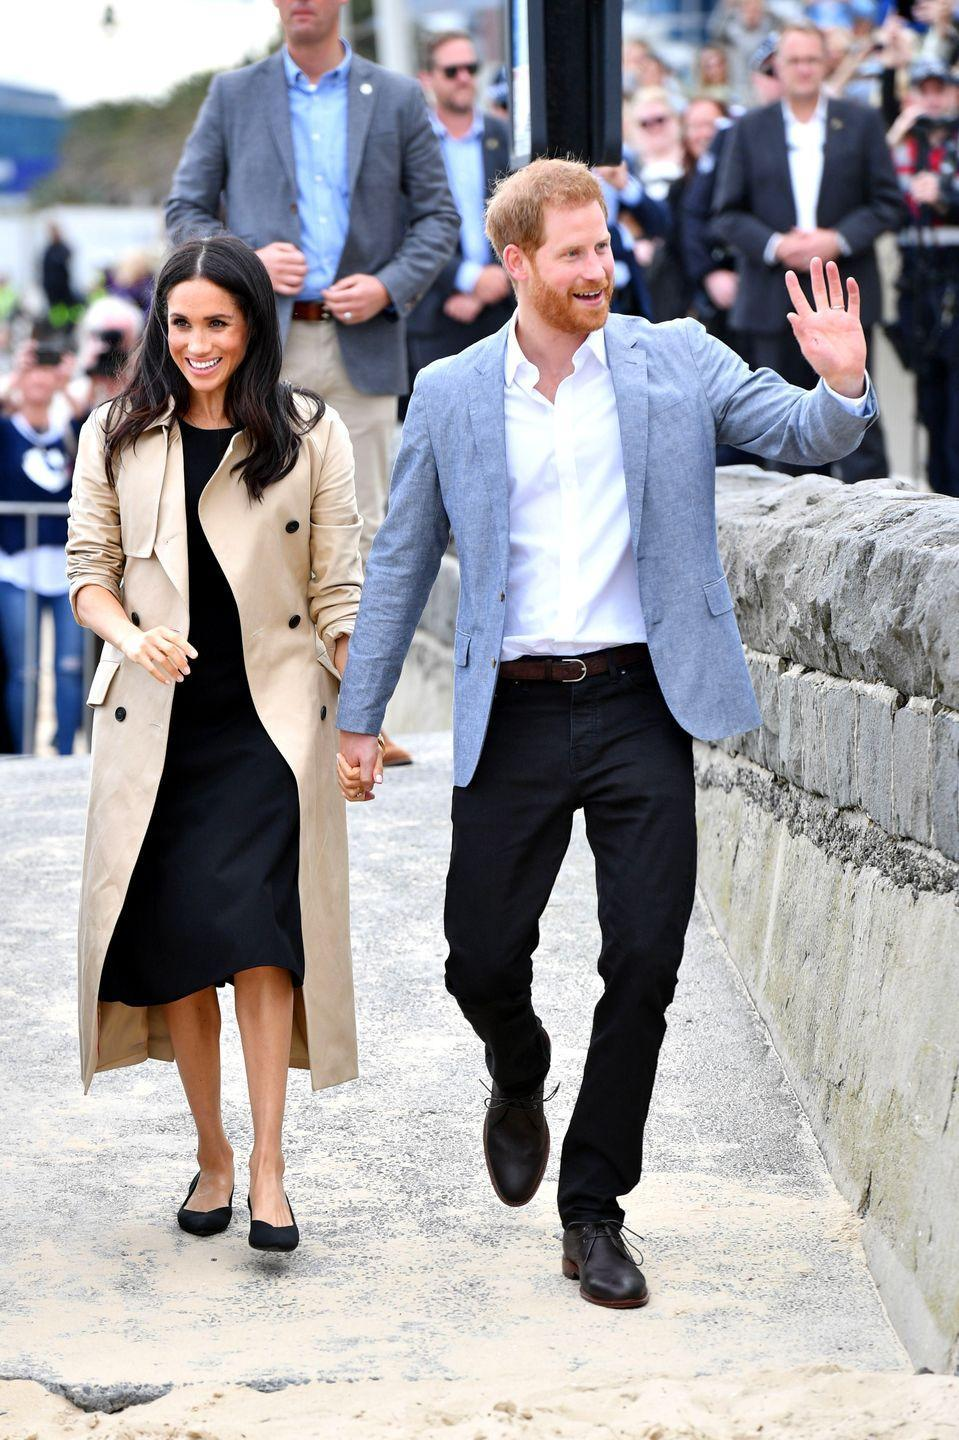 "<p>Harry and Meghan <a href=""https://www.townandcountrymag.com/society/tradition/g23871878/meghan-markle-prince-harry-royal-tour-melbourne-australia-day-3-photos/"" rel=""nofollow noopener"" target=""_blank"" data-ylk=""slk:later visited a beach"" class=""link rapid-noclick-resp"">later visited a beach</a> in Melbourne, where they each changed into <a href=""https://www.townandcountrymag.com/style/fashion-trends/a23890910/meghan-markle-club-monaco-dress-melbourne-australia-royal-tour-photos/"" rel=""nofollow noopener"" target=""_blank"" data-ylk=""slk:more casual outfits"" class=""link rapid-noclick-resp"">more casual outfits</a>. For this event, the Duchess wore<a href=""http://www.clubmonaco.com/product/index.jsp?productId=157223966&size=10,4,8,00,6,2,12,0&color=1174801&utm_content=15-1"" rel=""nofollow noopener"" target=""_blank"" data-ylk=""slk:a sleek black dress"" class=""link rapid-noclick-resp""> a sleek black dress</a> by Club Monaco with a pair of pointed toe flats by Rothy's.<br></p><p><a class=""link rapid-noclick-resp"" href=""https://go.redirectingat.com?id=74968X1596630&url=http%3A%2F%2Fwww.clubmonaco.com%2Fproduct%2Findex.jsp%3FproductId%3D157223966&sref=https%3A%2F%2Fwww.townandcountrymag.com%2Fstyle%2Ffashion-trends%2Fg3272%2Fmeghan-markle-preppy-style%2F"" rel=""nofollow noopener"" target=""_blank"" data-ylk=""slk:SHOP NOW"">SHOP NOW</a> <em>Miguellina Dress by <em>Club Monaco</em>, $268</em></p><p><a class=""link rapid-noclick-resp"" href=""https://go.redirectingat.com?id=74968X1596630&url=https%3A%2F%2Frothys.com%2Fproducts%2Fthe-point-black-solid%3FsiteID%3DTnL5HPStwNw-SRqL_yTmfs9XjHG3noa4Zg&sref=https%3A%2F%2Fwww.townandcountrymag.com%2Fstyle%2Ffashion-trends%2Fg3272%2Fmeghan-markle-preppy-style%2F"" rel=""nofollow noopener"" target=""_blank"" data-ylk=""slk:SHOP NOW"">SHOP NOW </a><em>Black Solid Flats by Rothy's, $145 </em></p>"